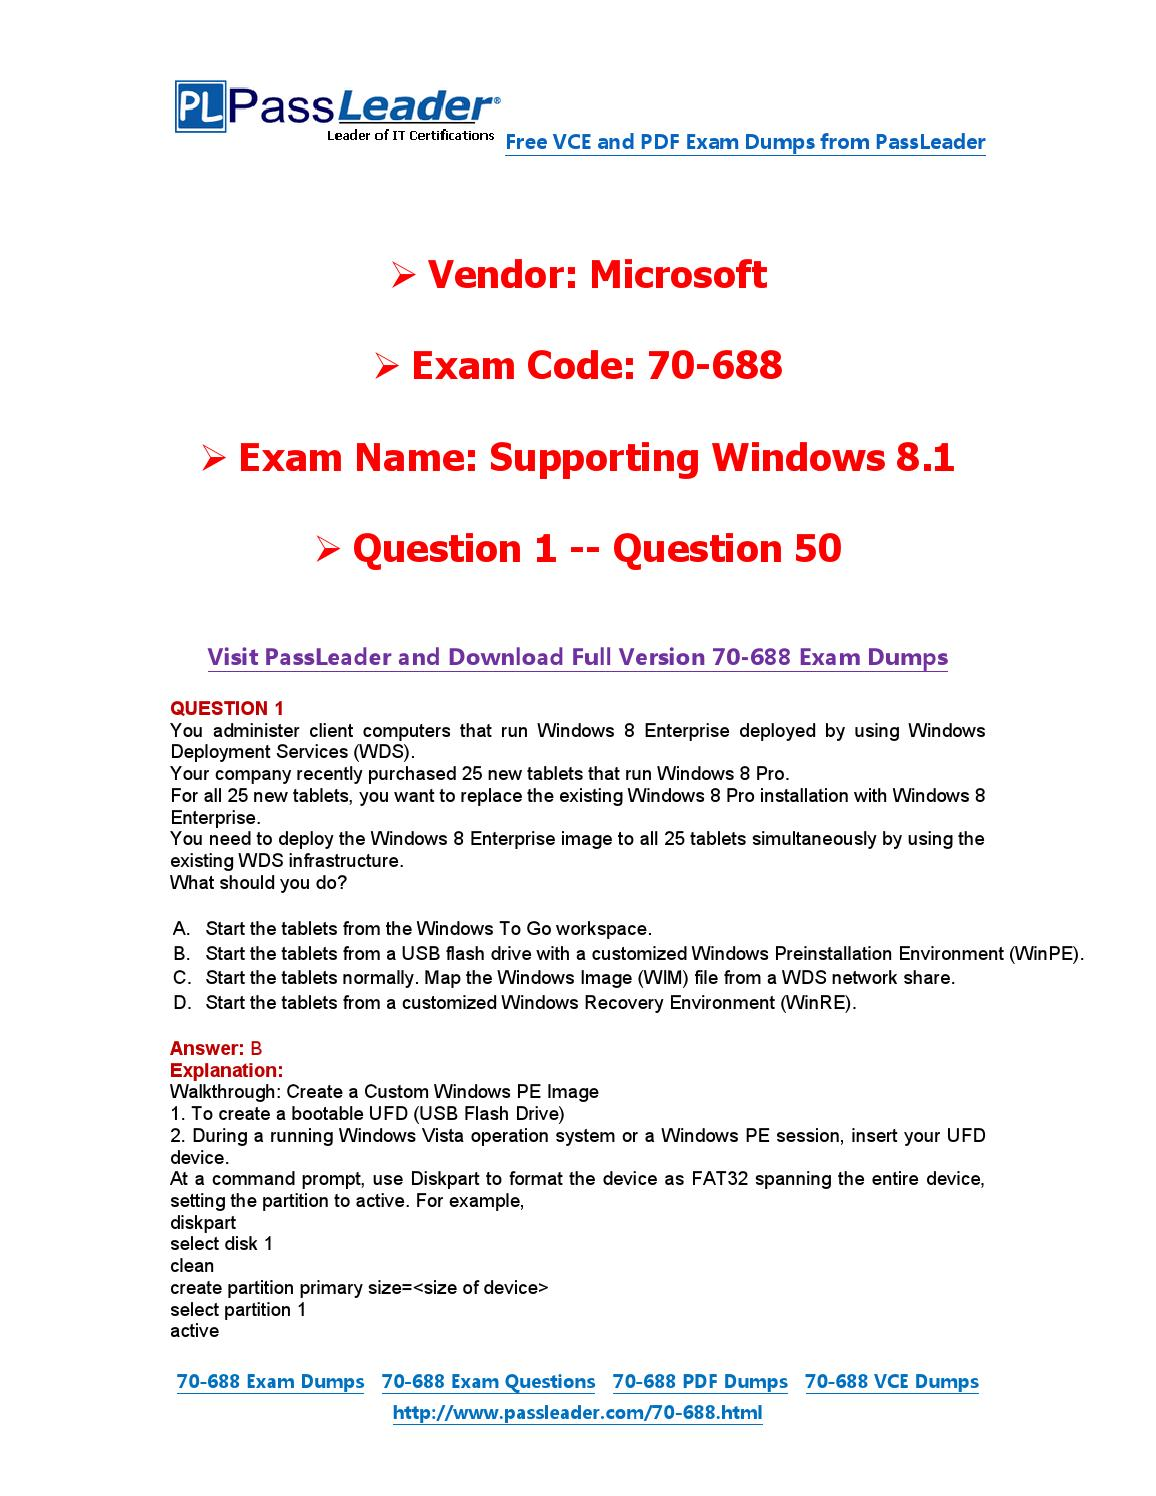 2016 New 70-688 Exam Dumps For Free (VCE and PDF) (1-50) by